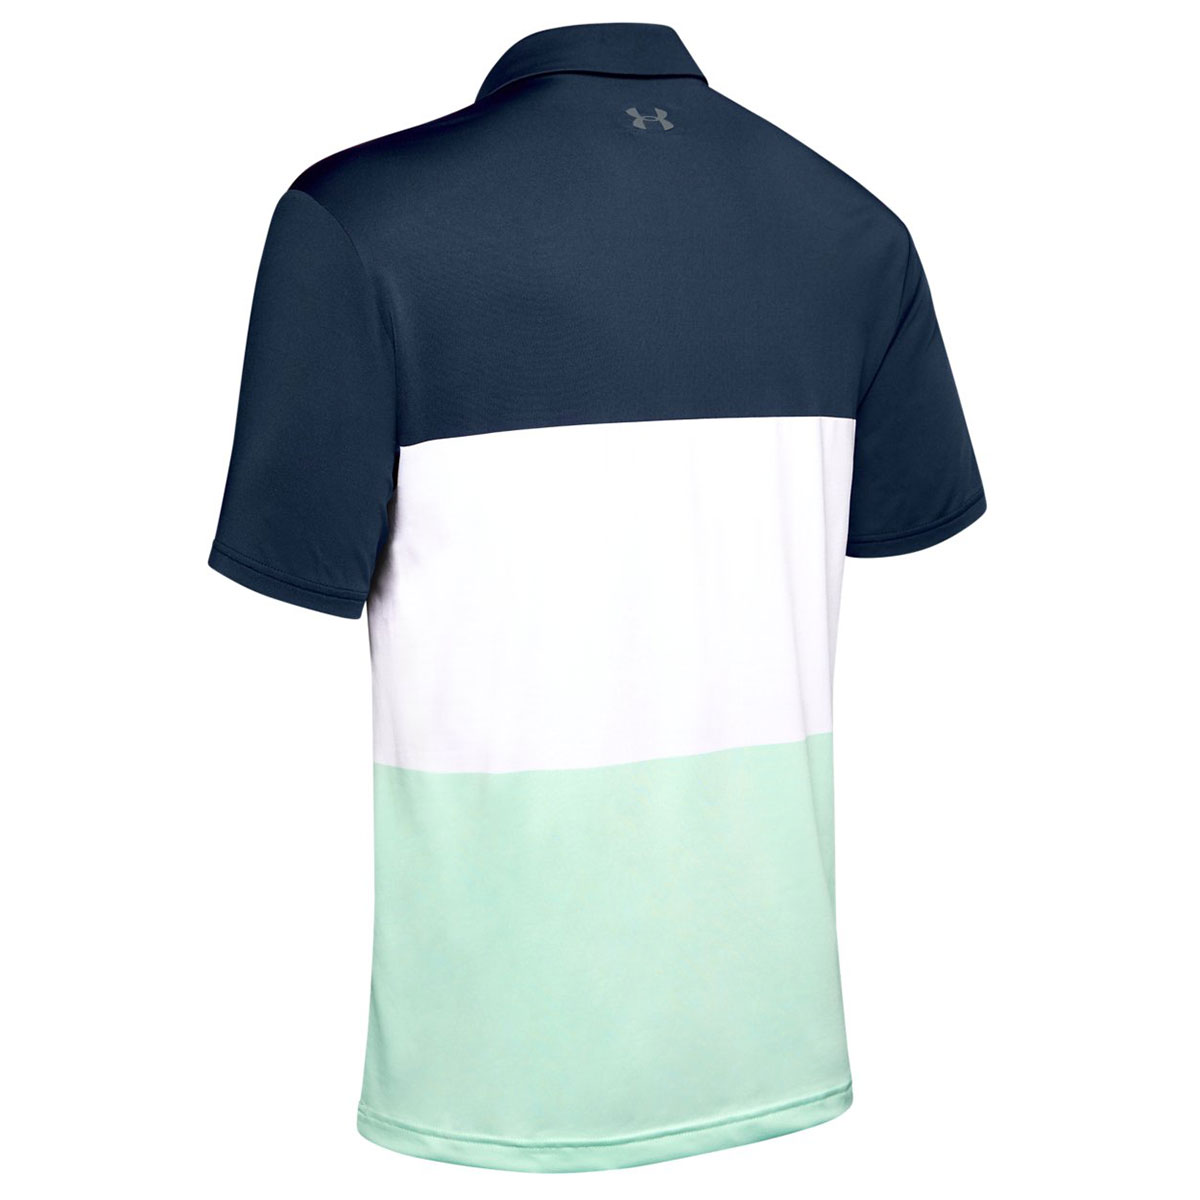 Under-Armour-Mens-2019-Playoff-Polo-2-0-Breathable-Light-Stretch-Polo-Shirt thumbnail 15